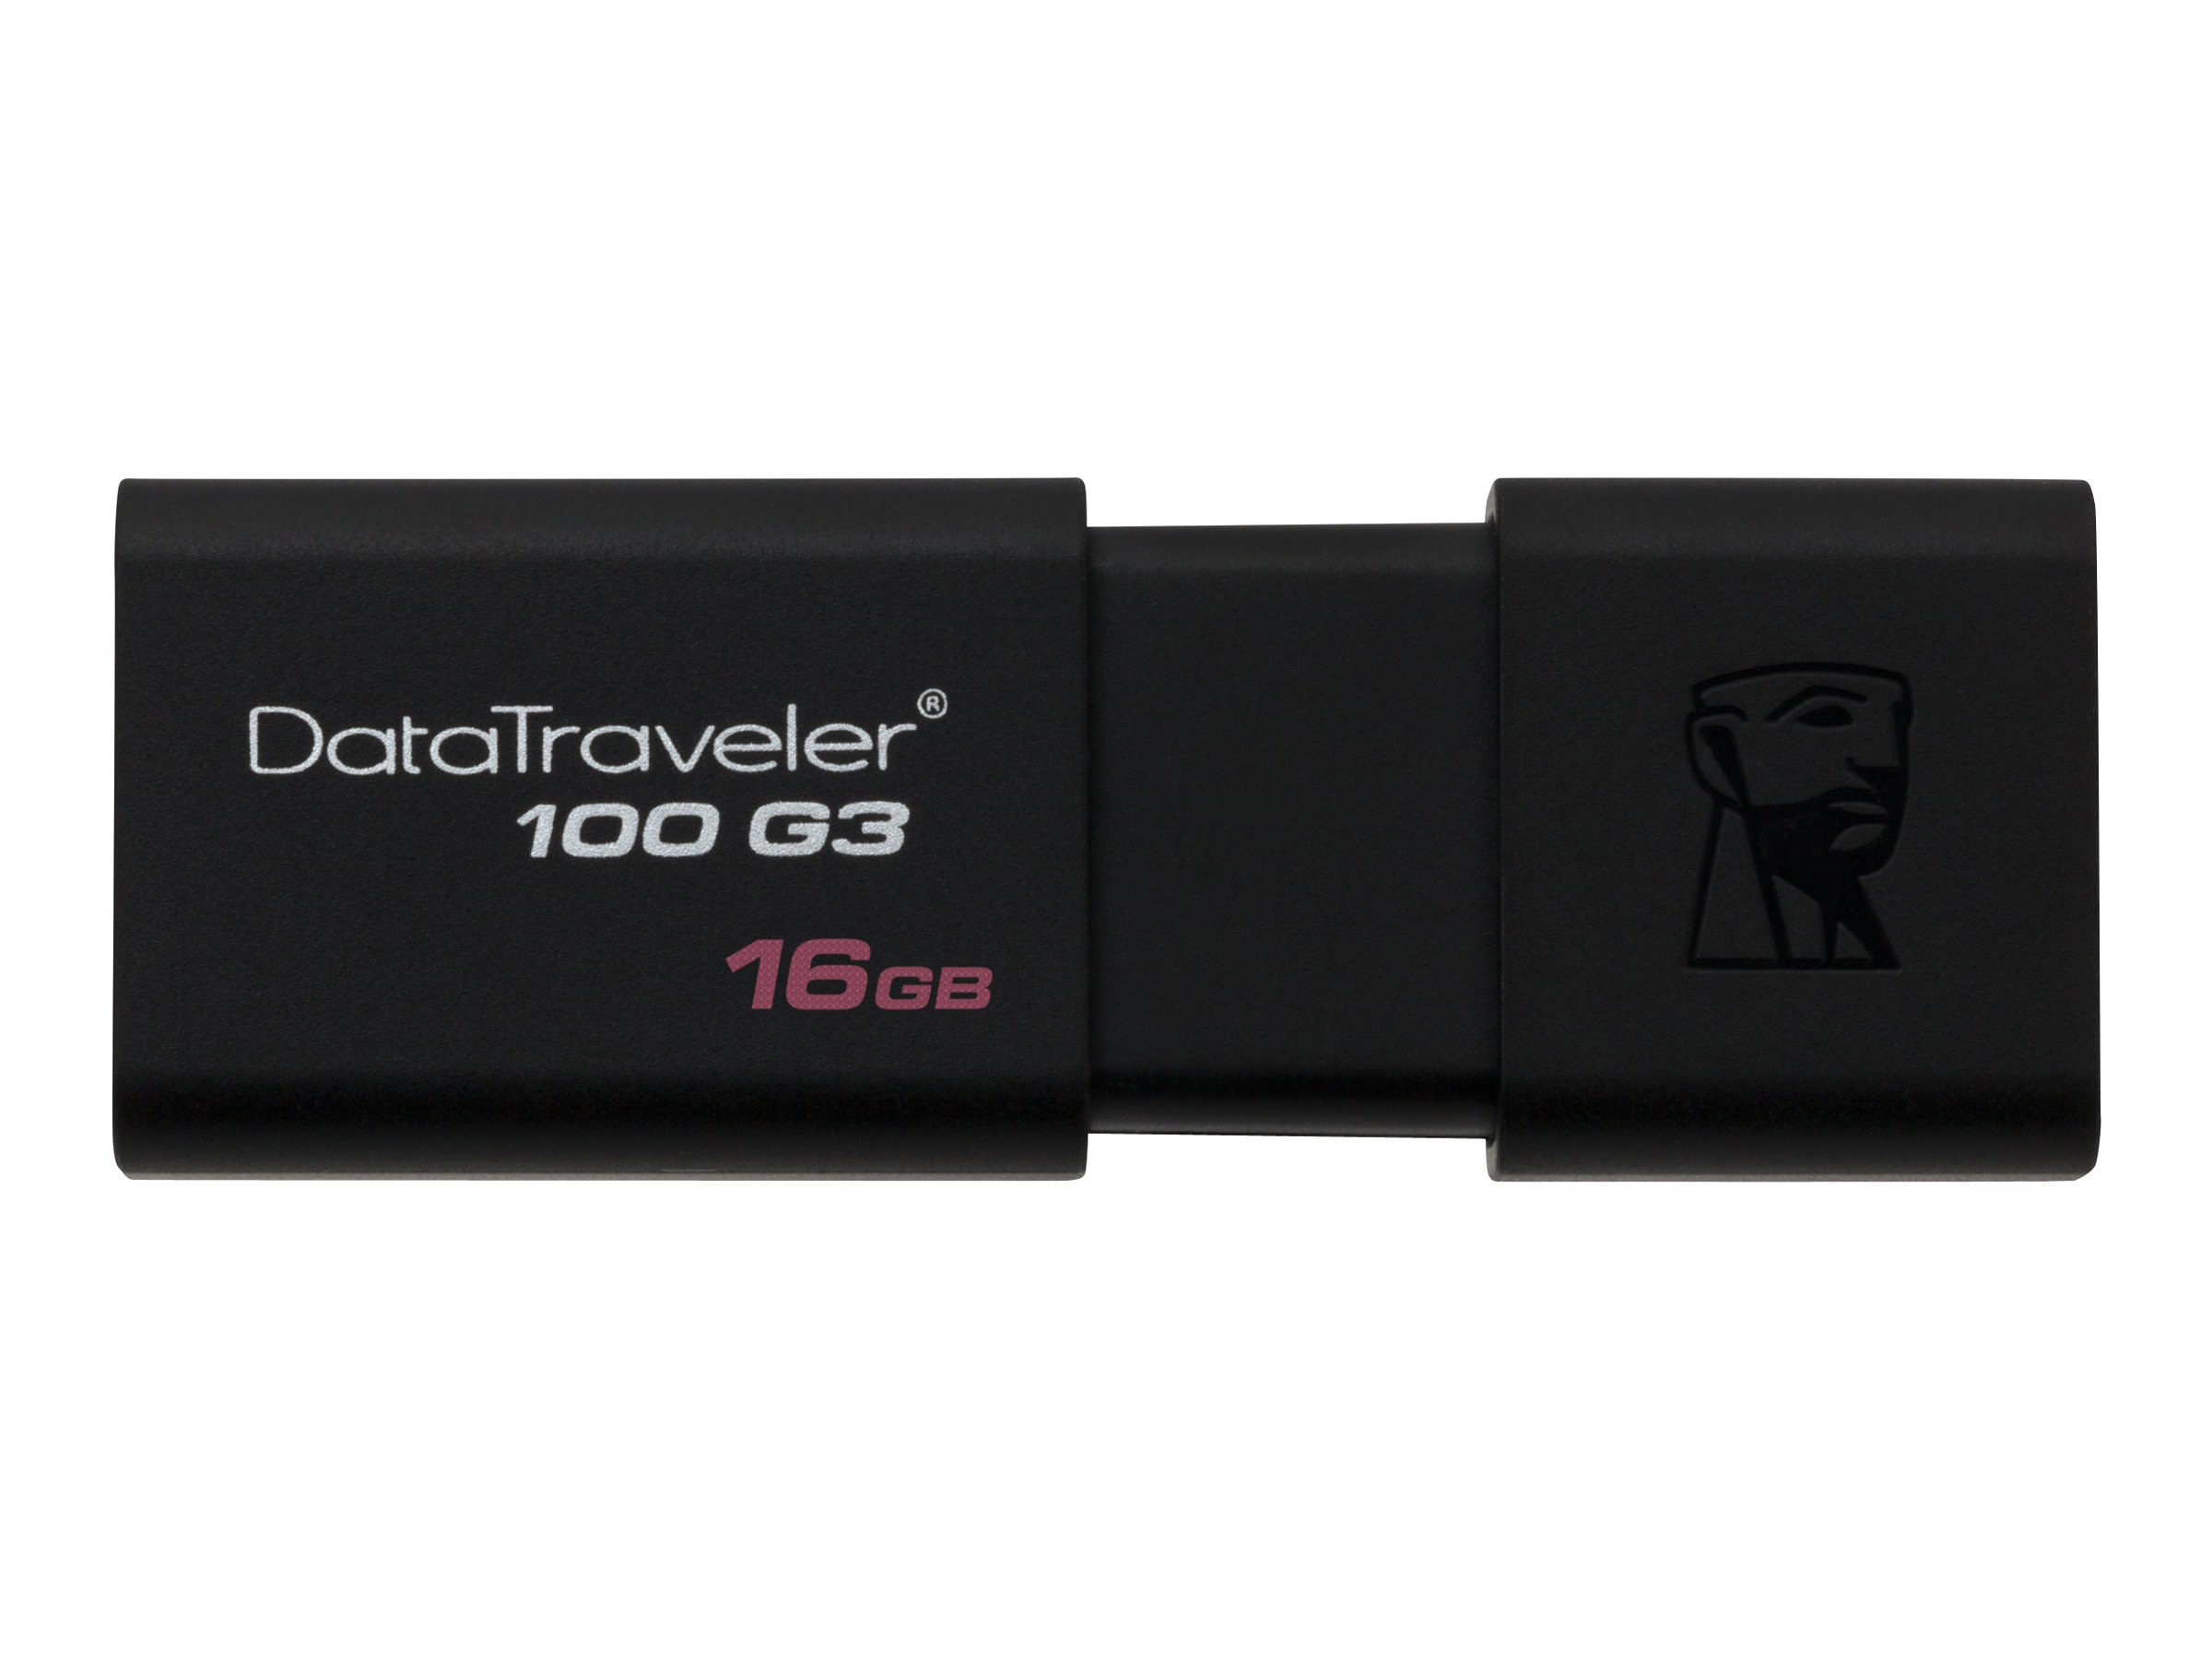 Kingston 16GB DataTraveler 100 G3 USB 3.0 Flash Drive